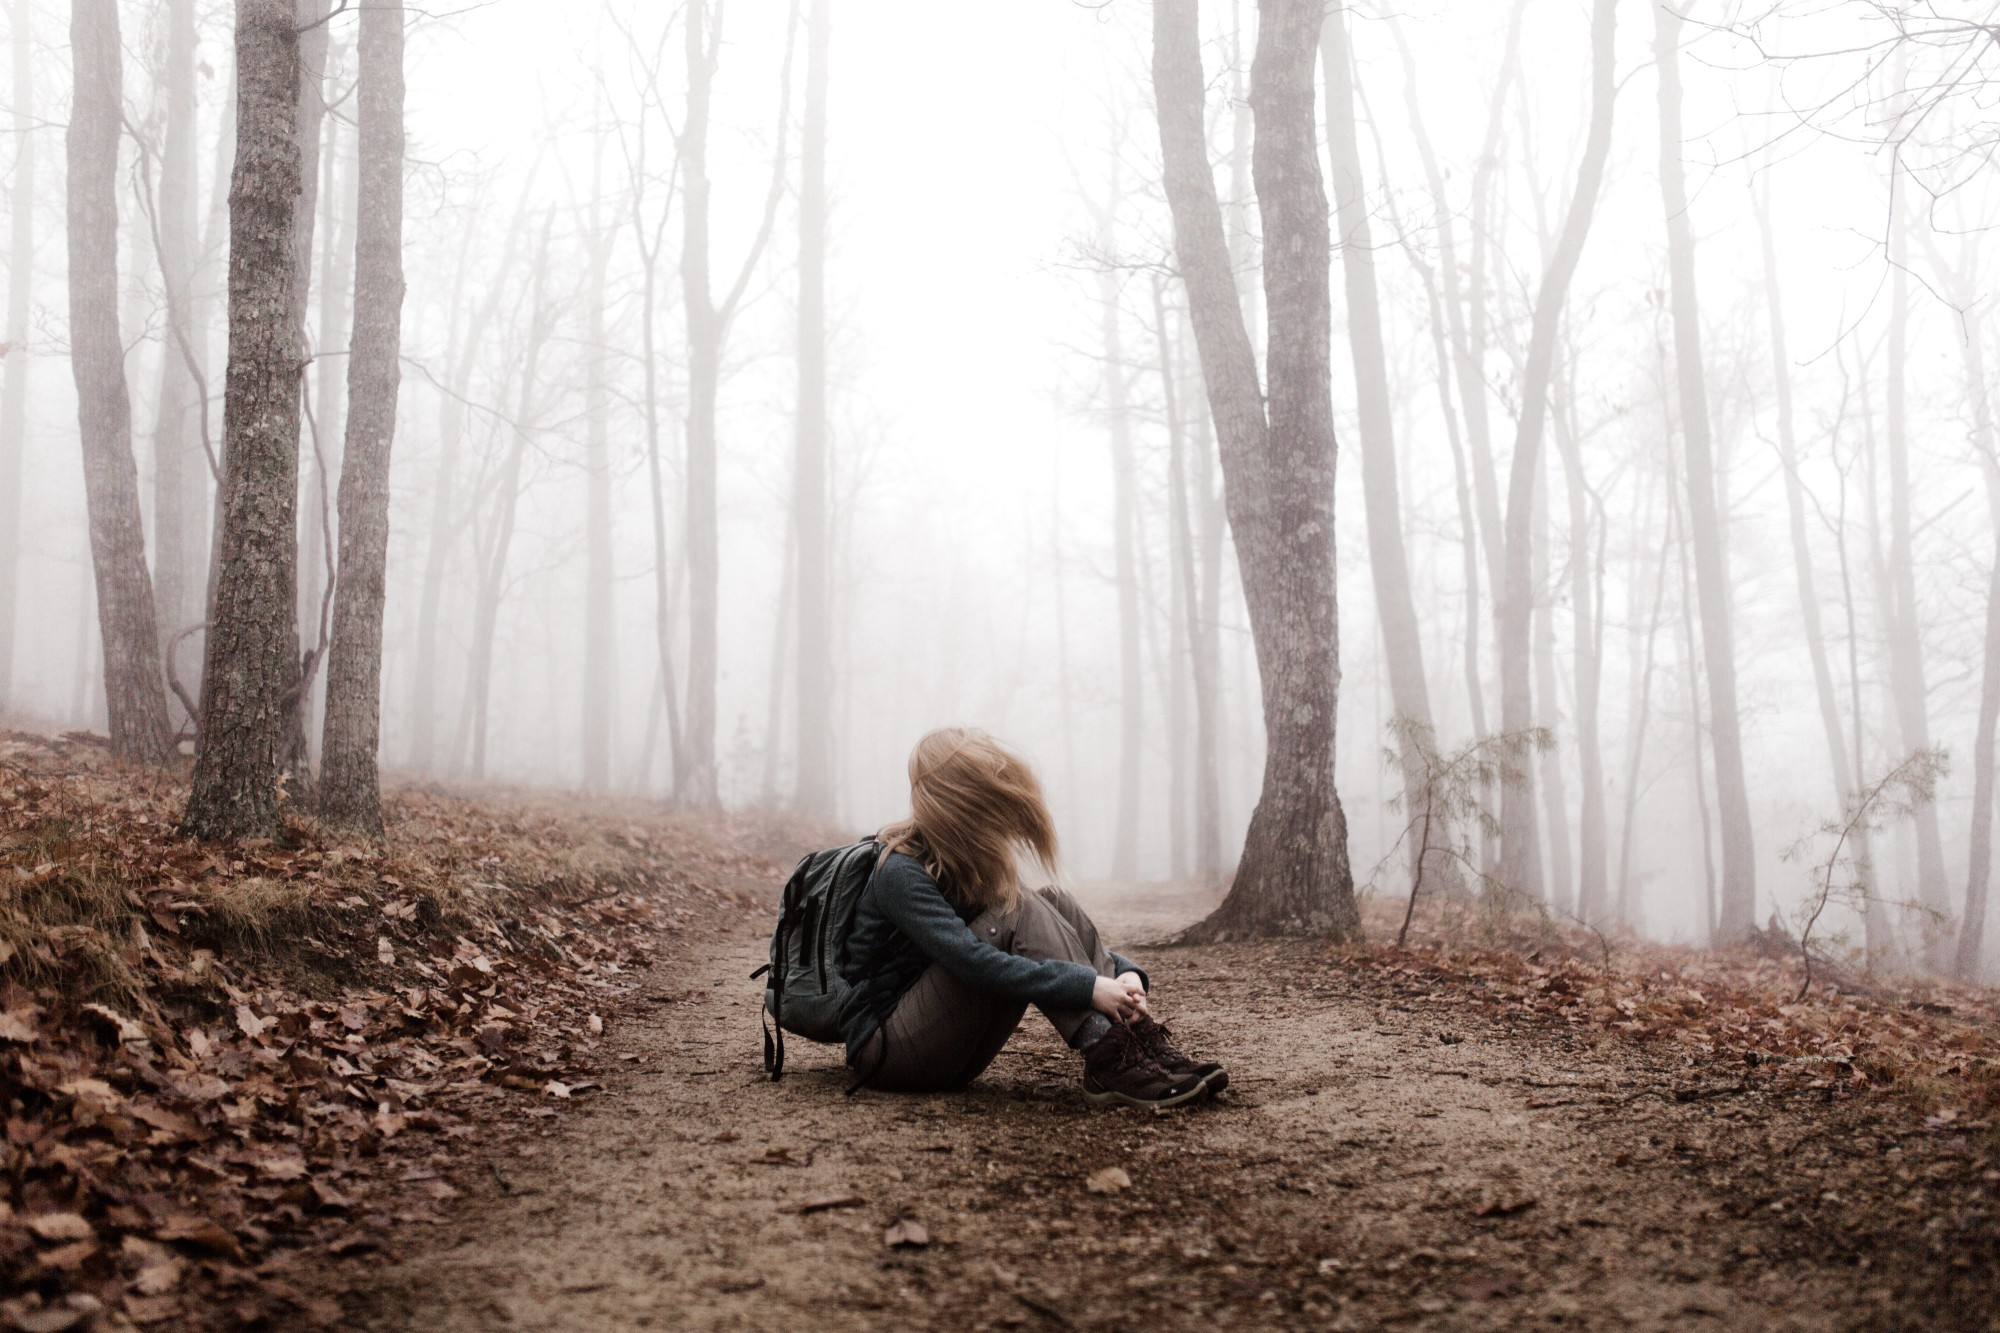 A girl on a hiking trail, sitting down, holding her legs, sad.